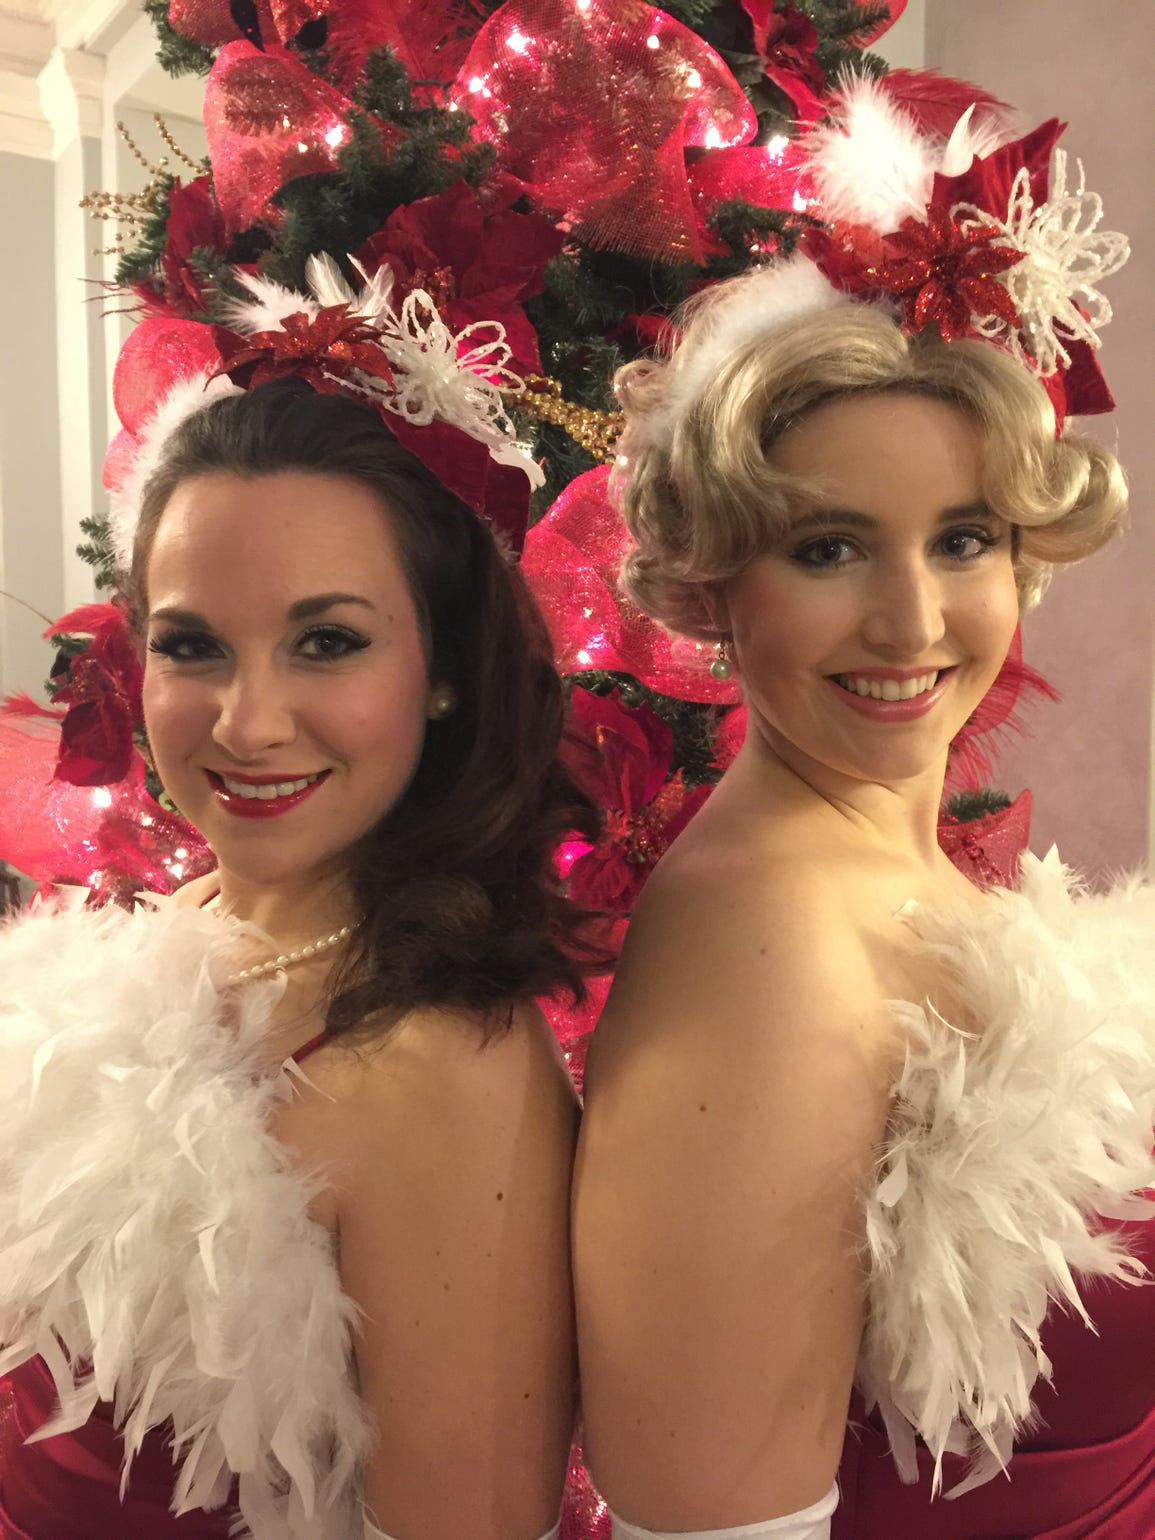 'White Christmas' will take stage this weekend at Center